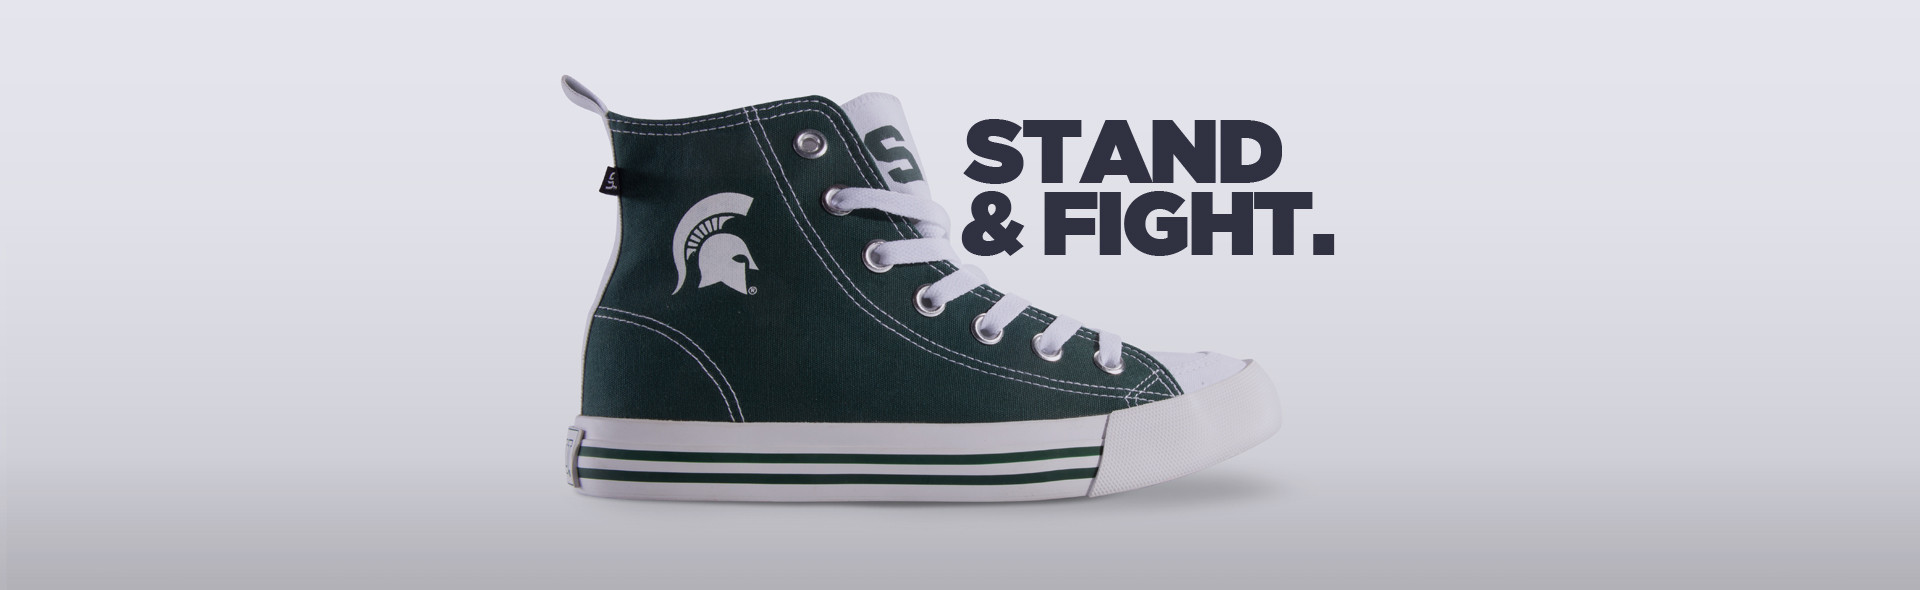 michigan-state-high-top1